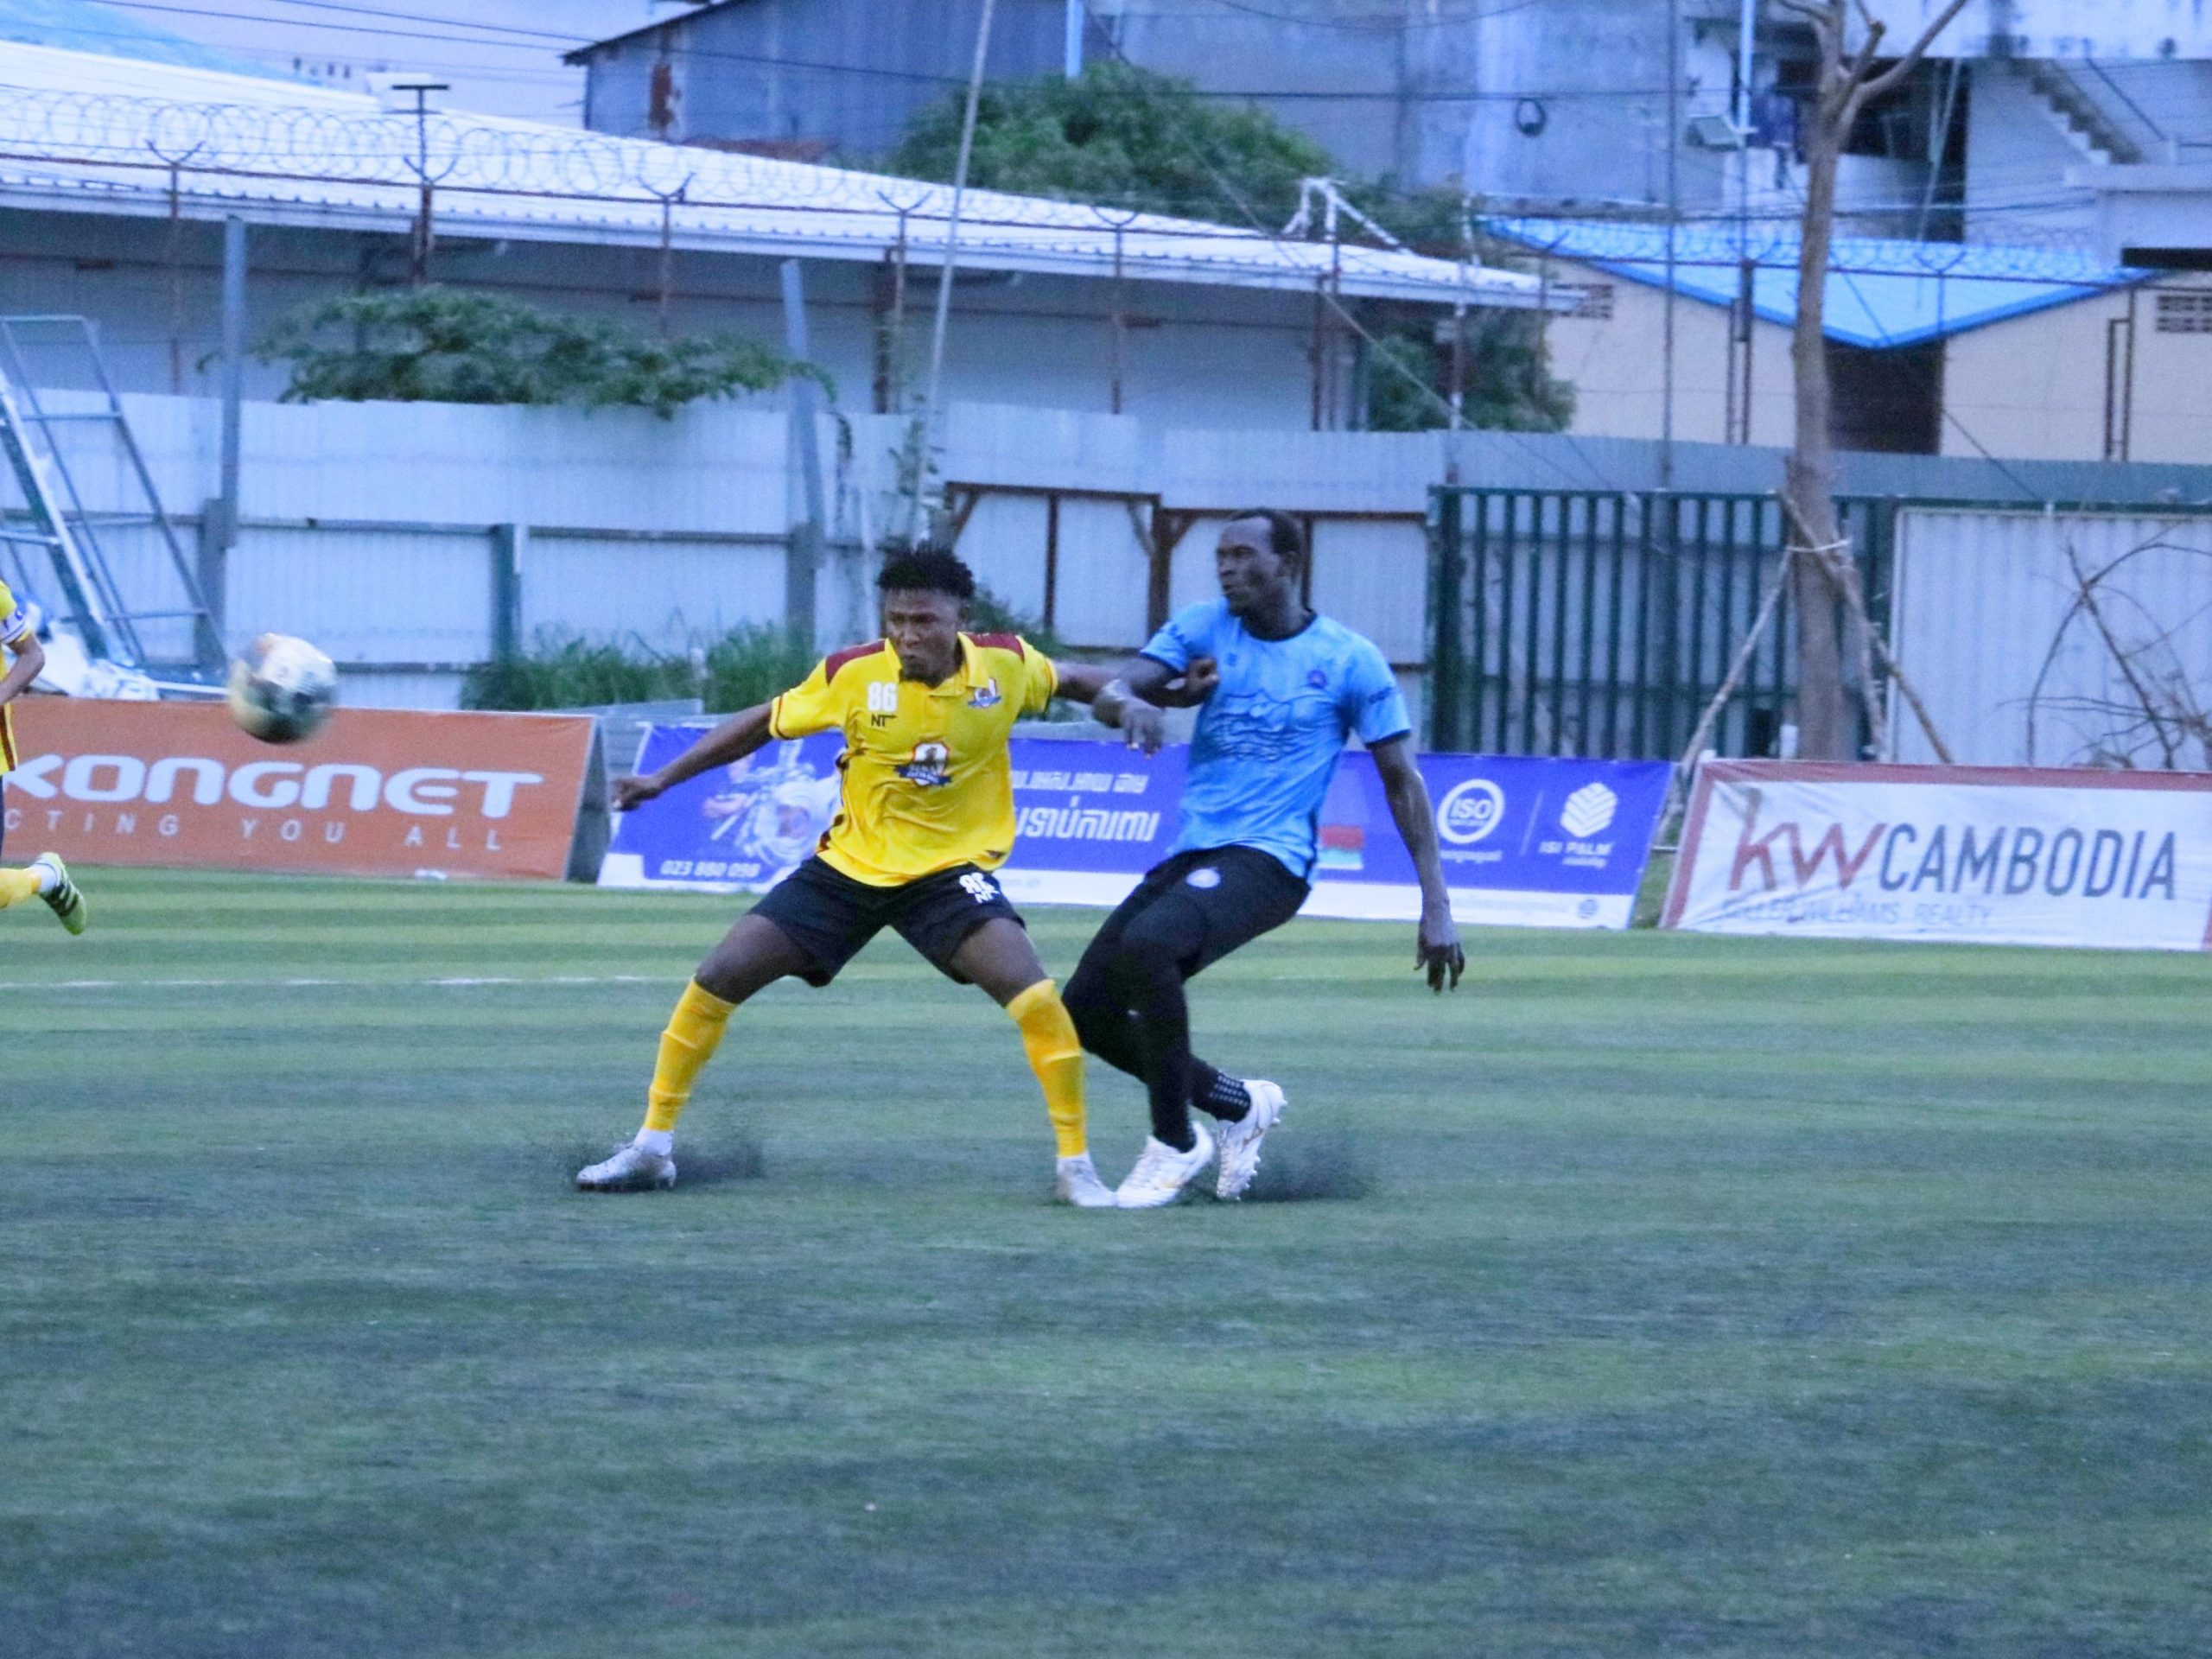 Newcomer TN Kandal wins KW Cambodia League 2020 for the first time